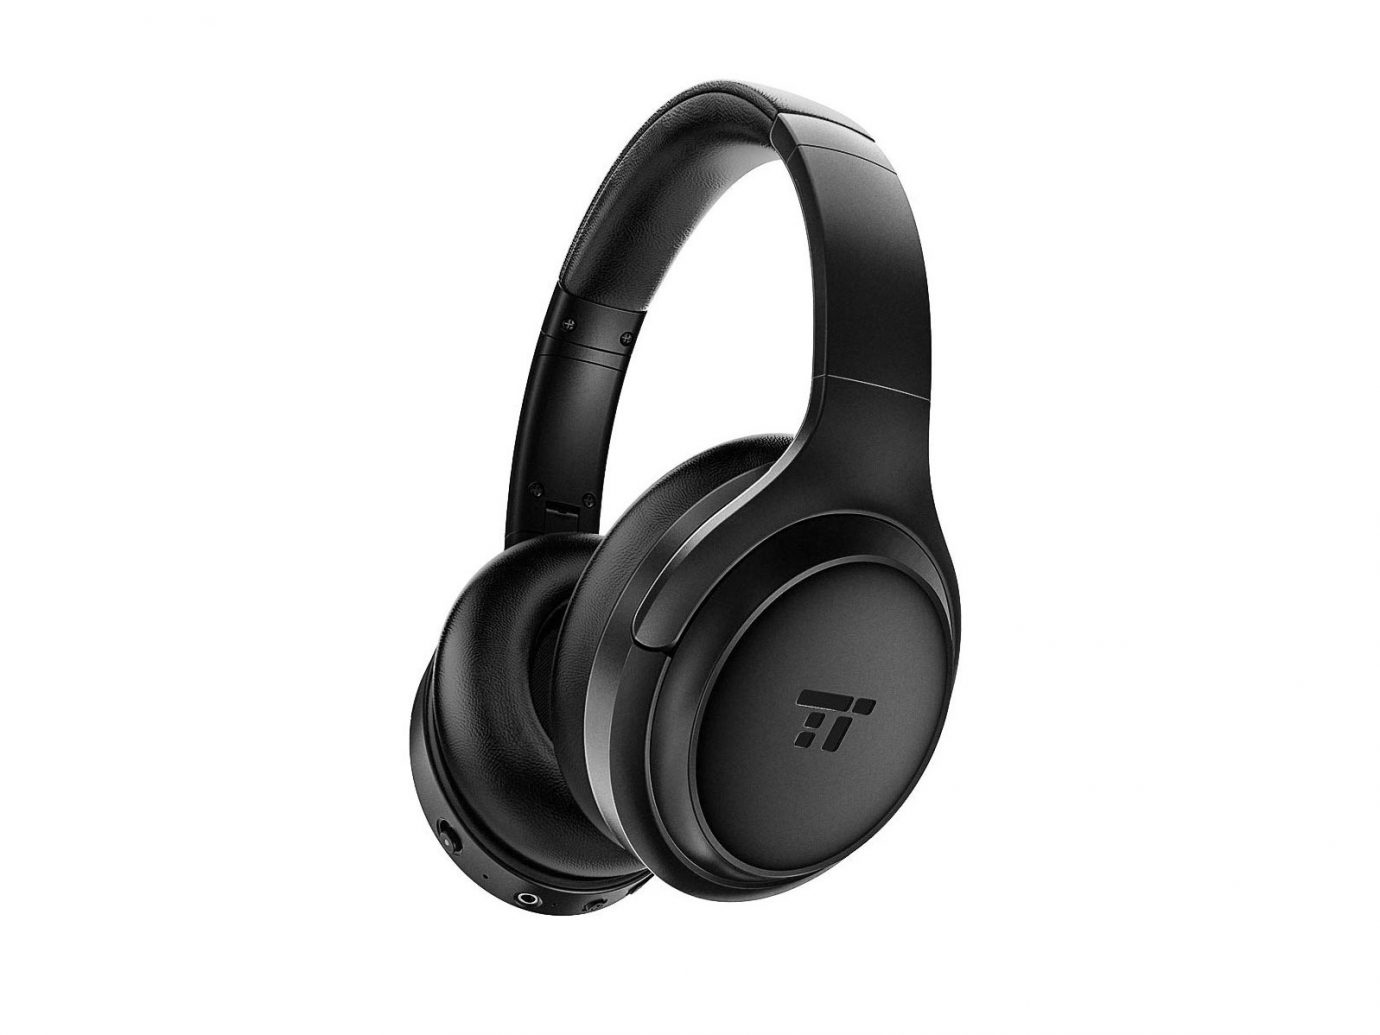 TaoTronics Active Noise Canceling Over-Ear Headphones